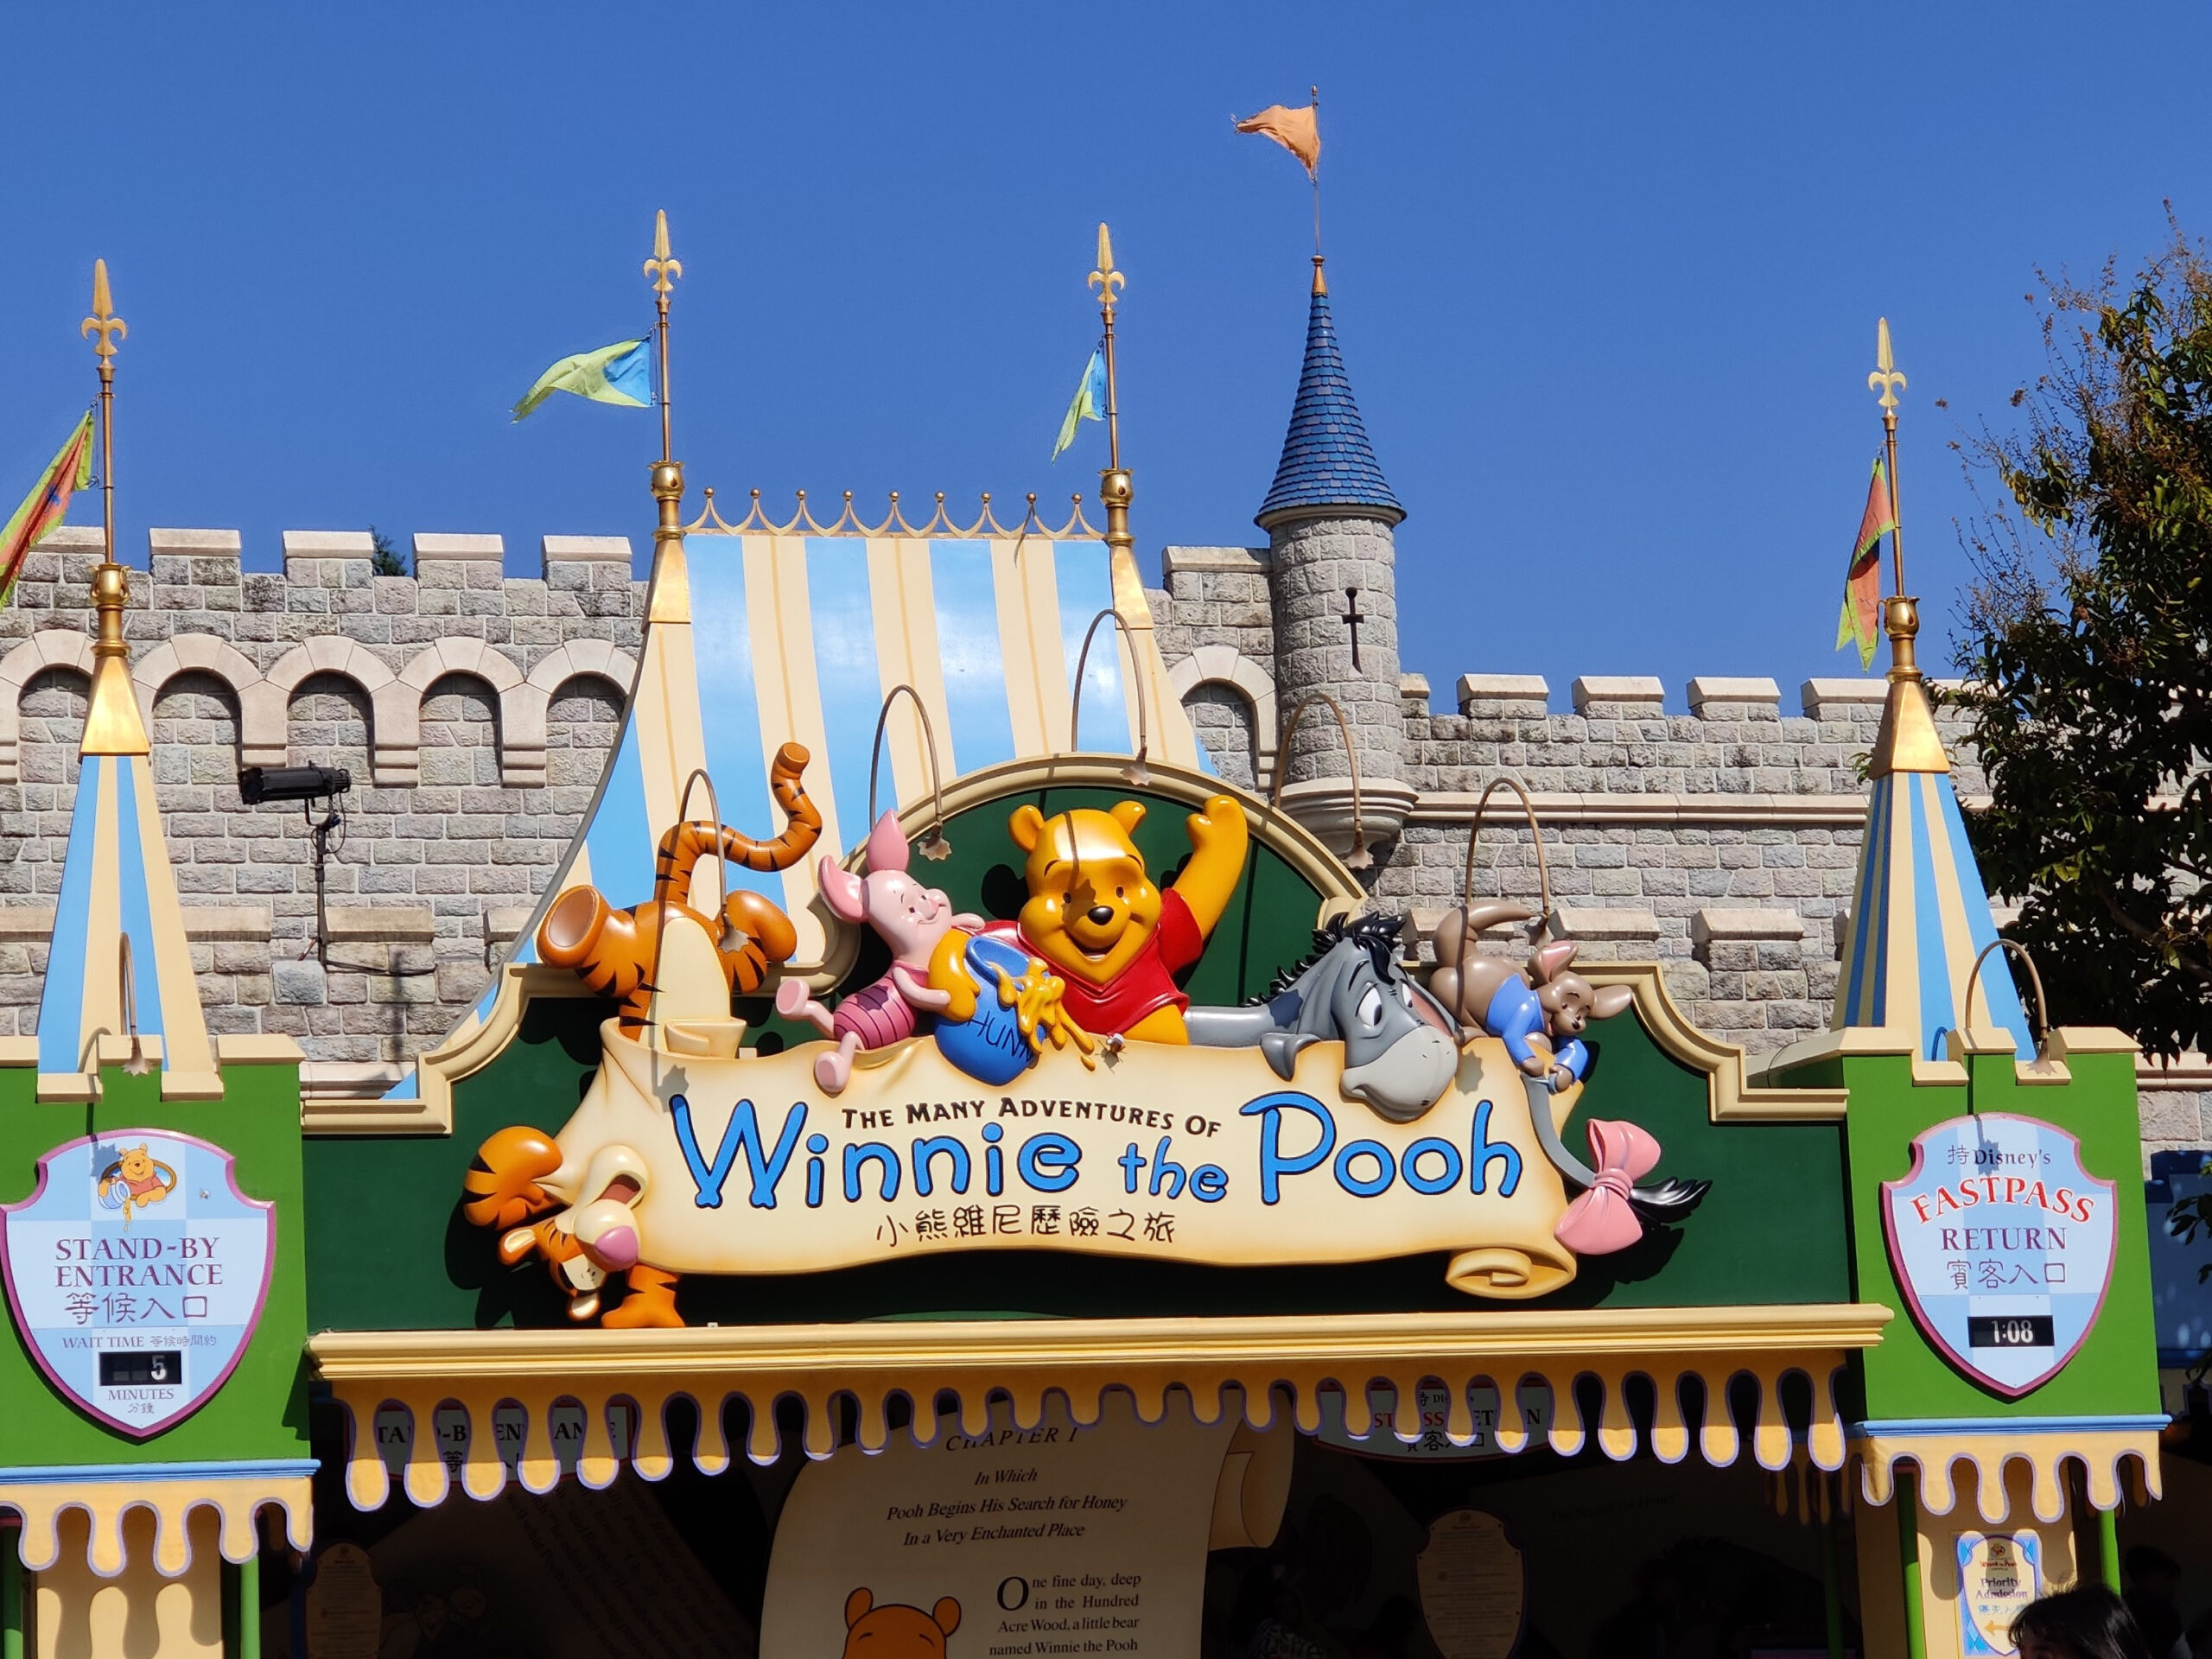 List Of Rides At Disney World Printable 2021